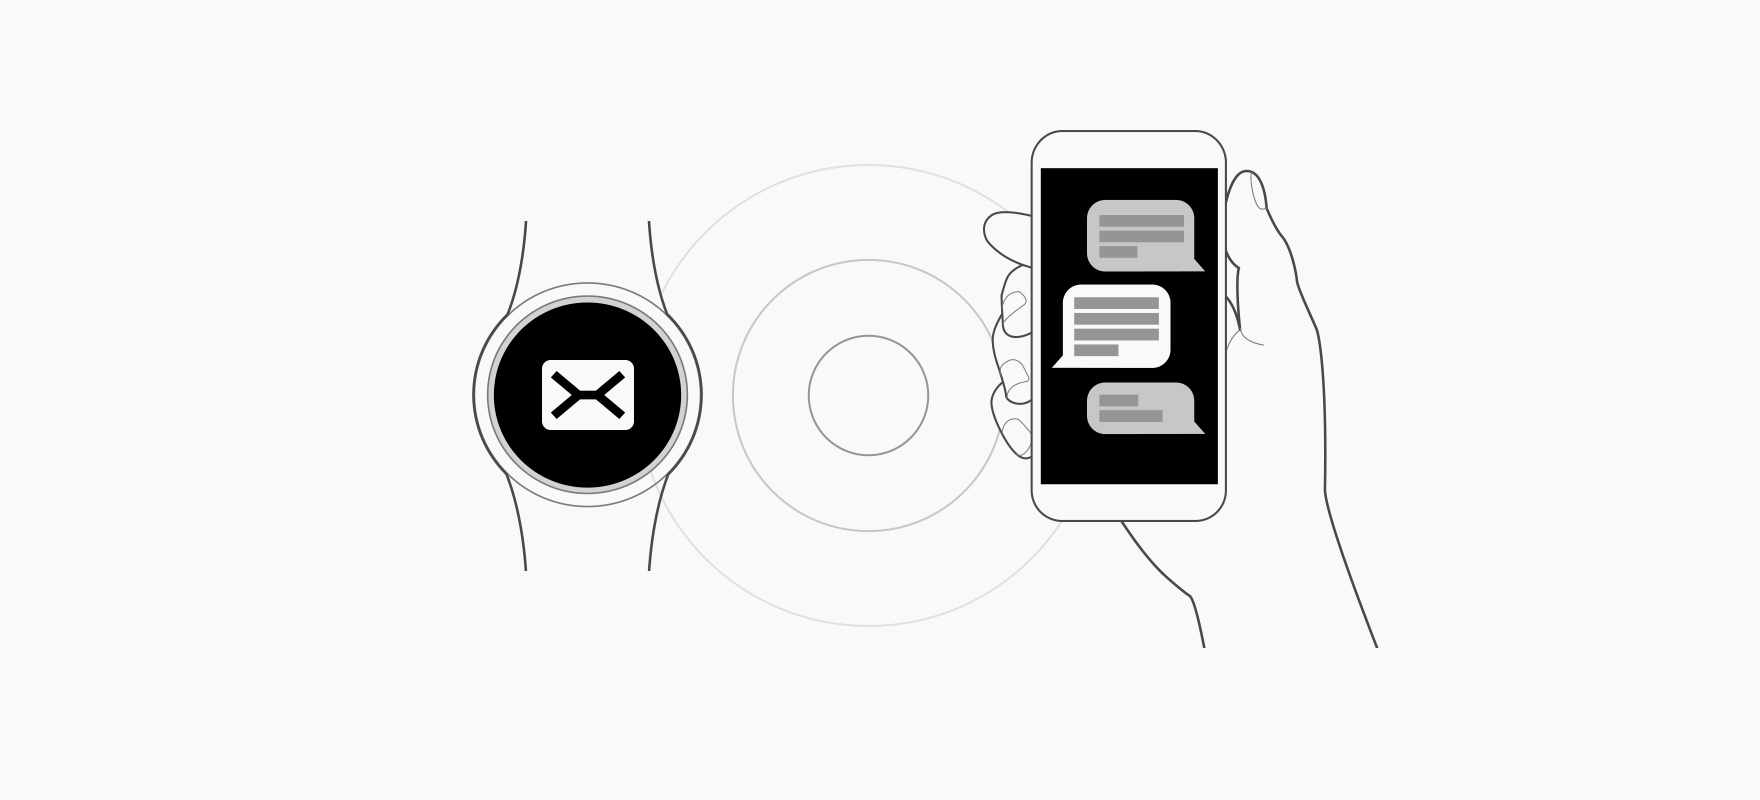 When the watch and the paired phone are within a certain range, users can open information from the watch on the phone.